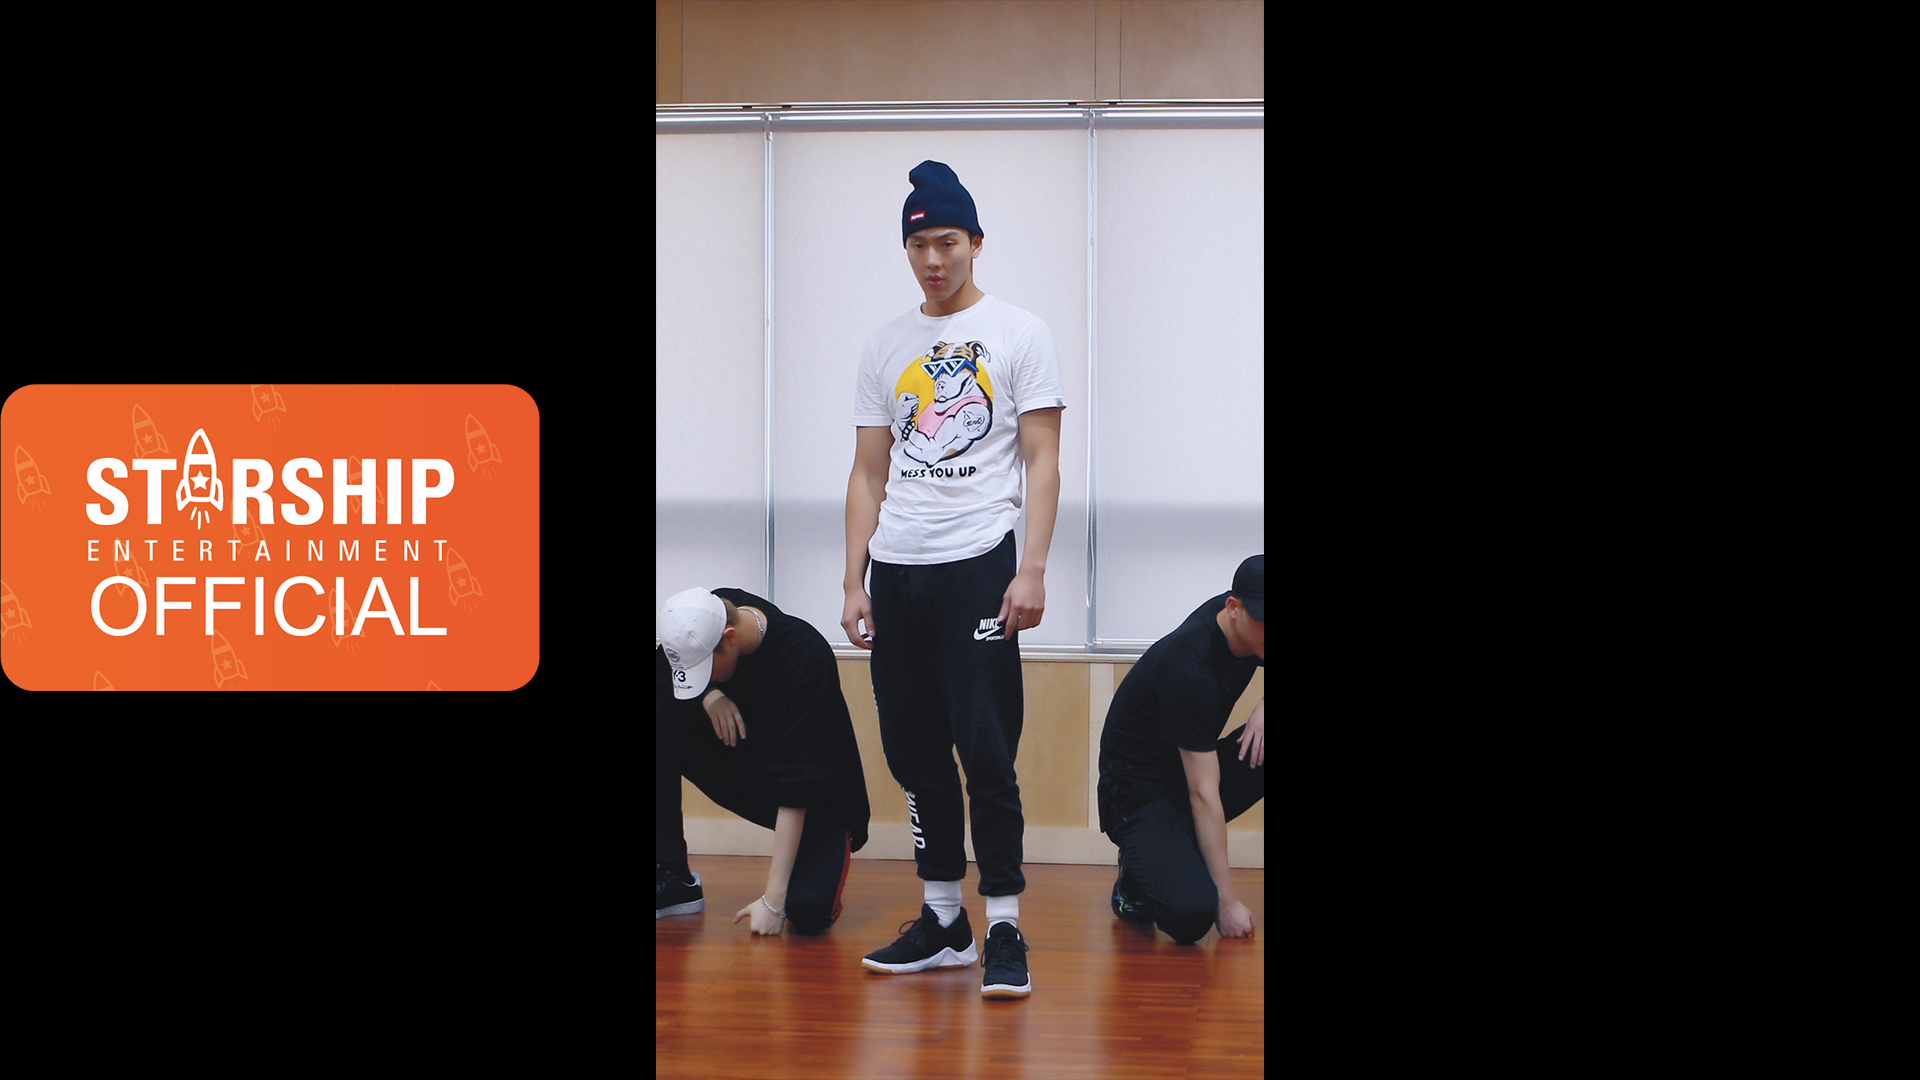 [SHOWNU][Dance Practice] 몬스타엑스 (MONSTA X) - 'SHOOT OUT' Vertical Video